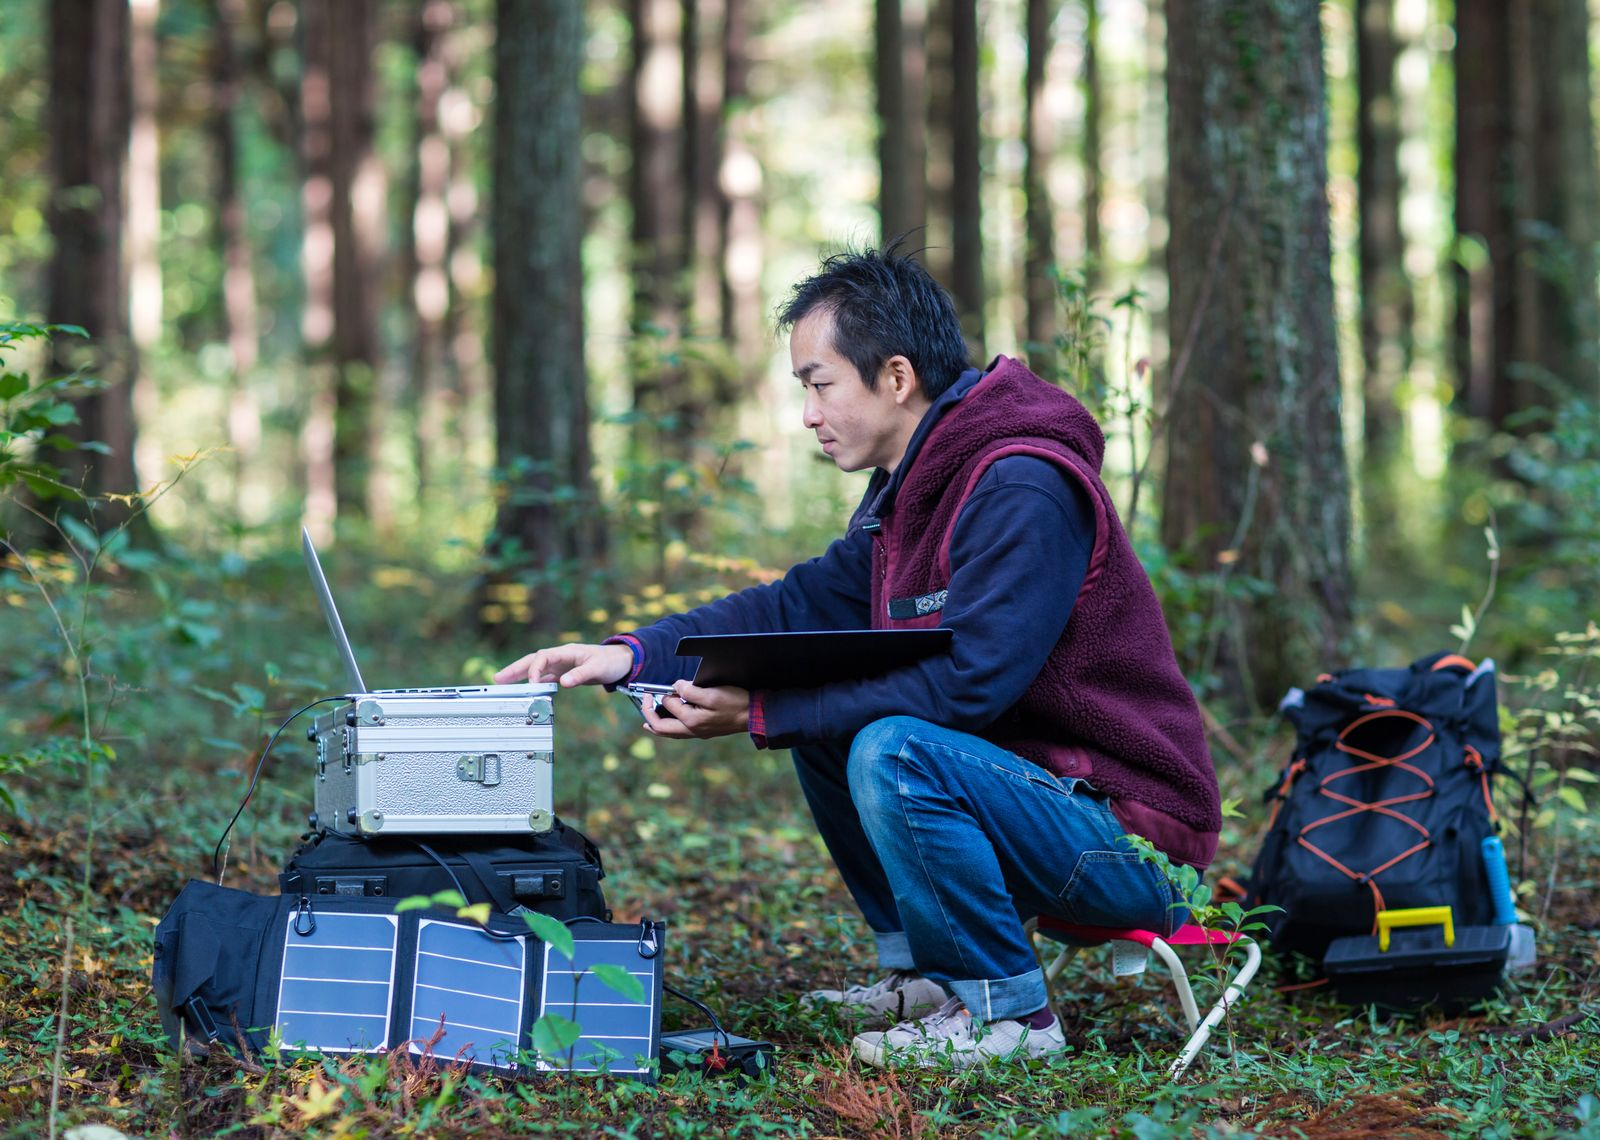 Environmentalist inputting data at a solar powered field station